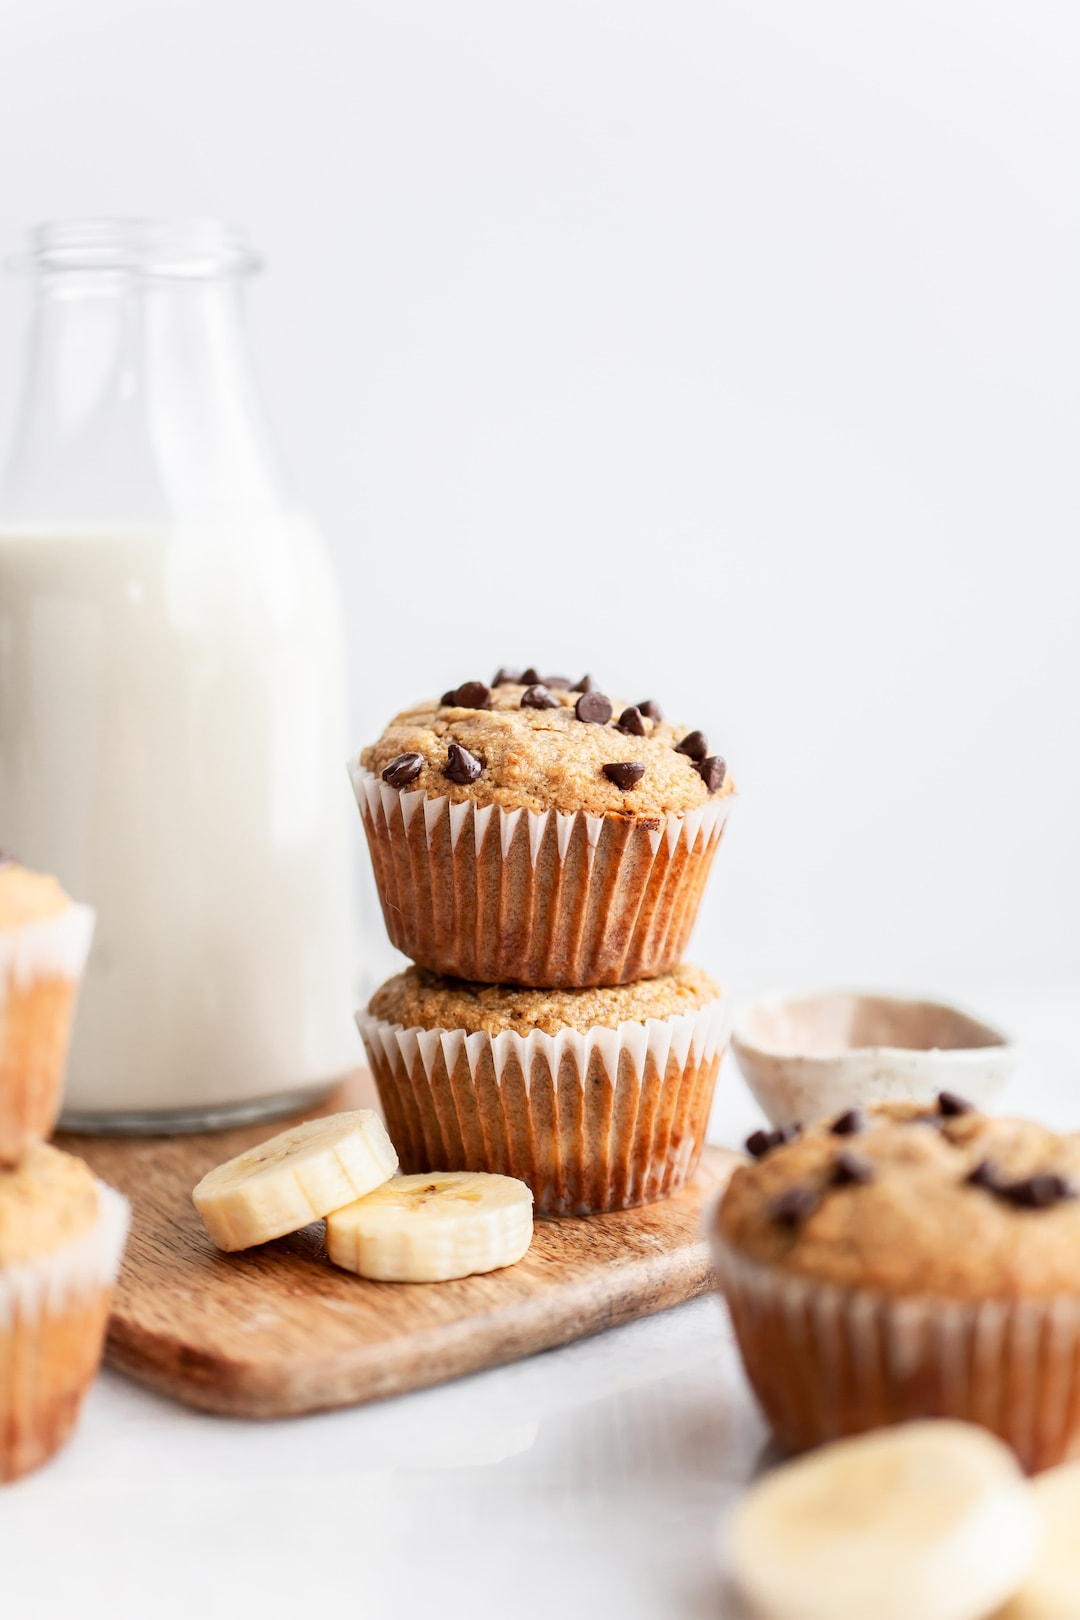 Stack of two Easy Almond Flour Banana Muffins with chocolate chips